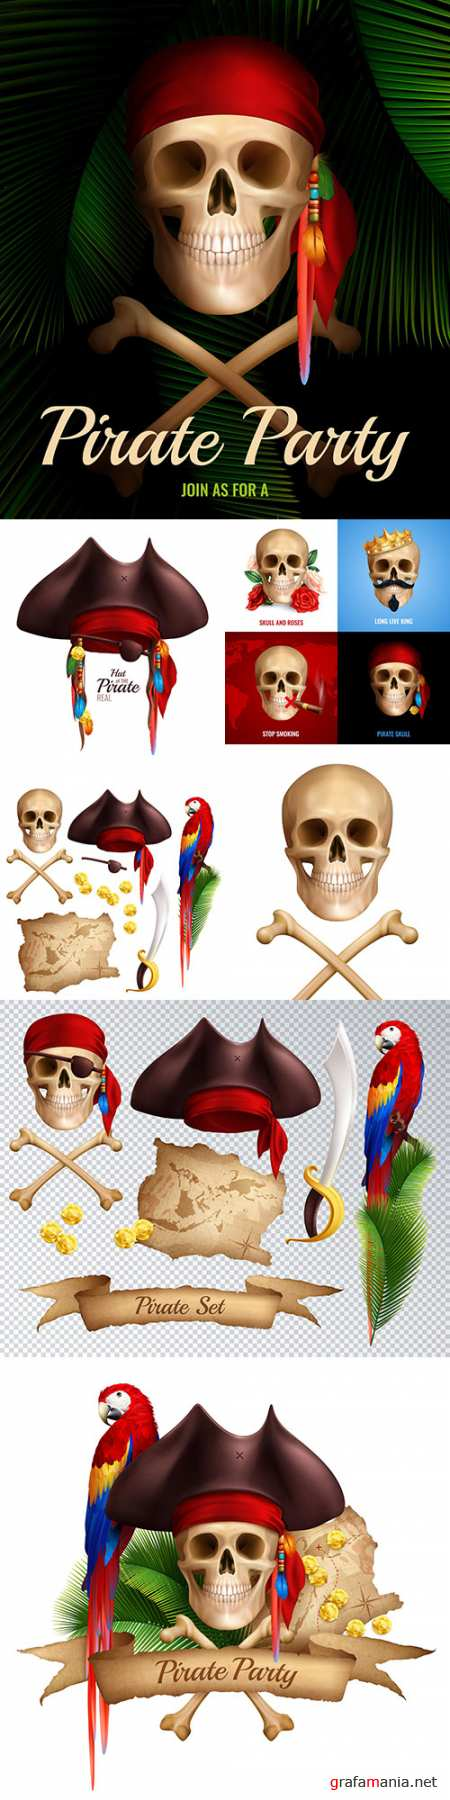 Pirate party and design elements realistic illustrations